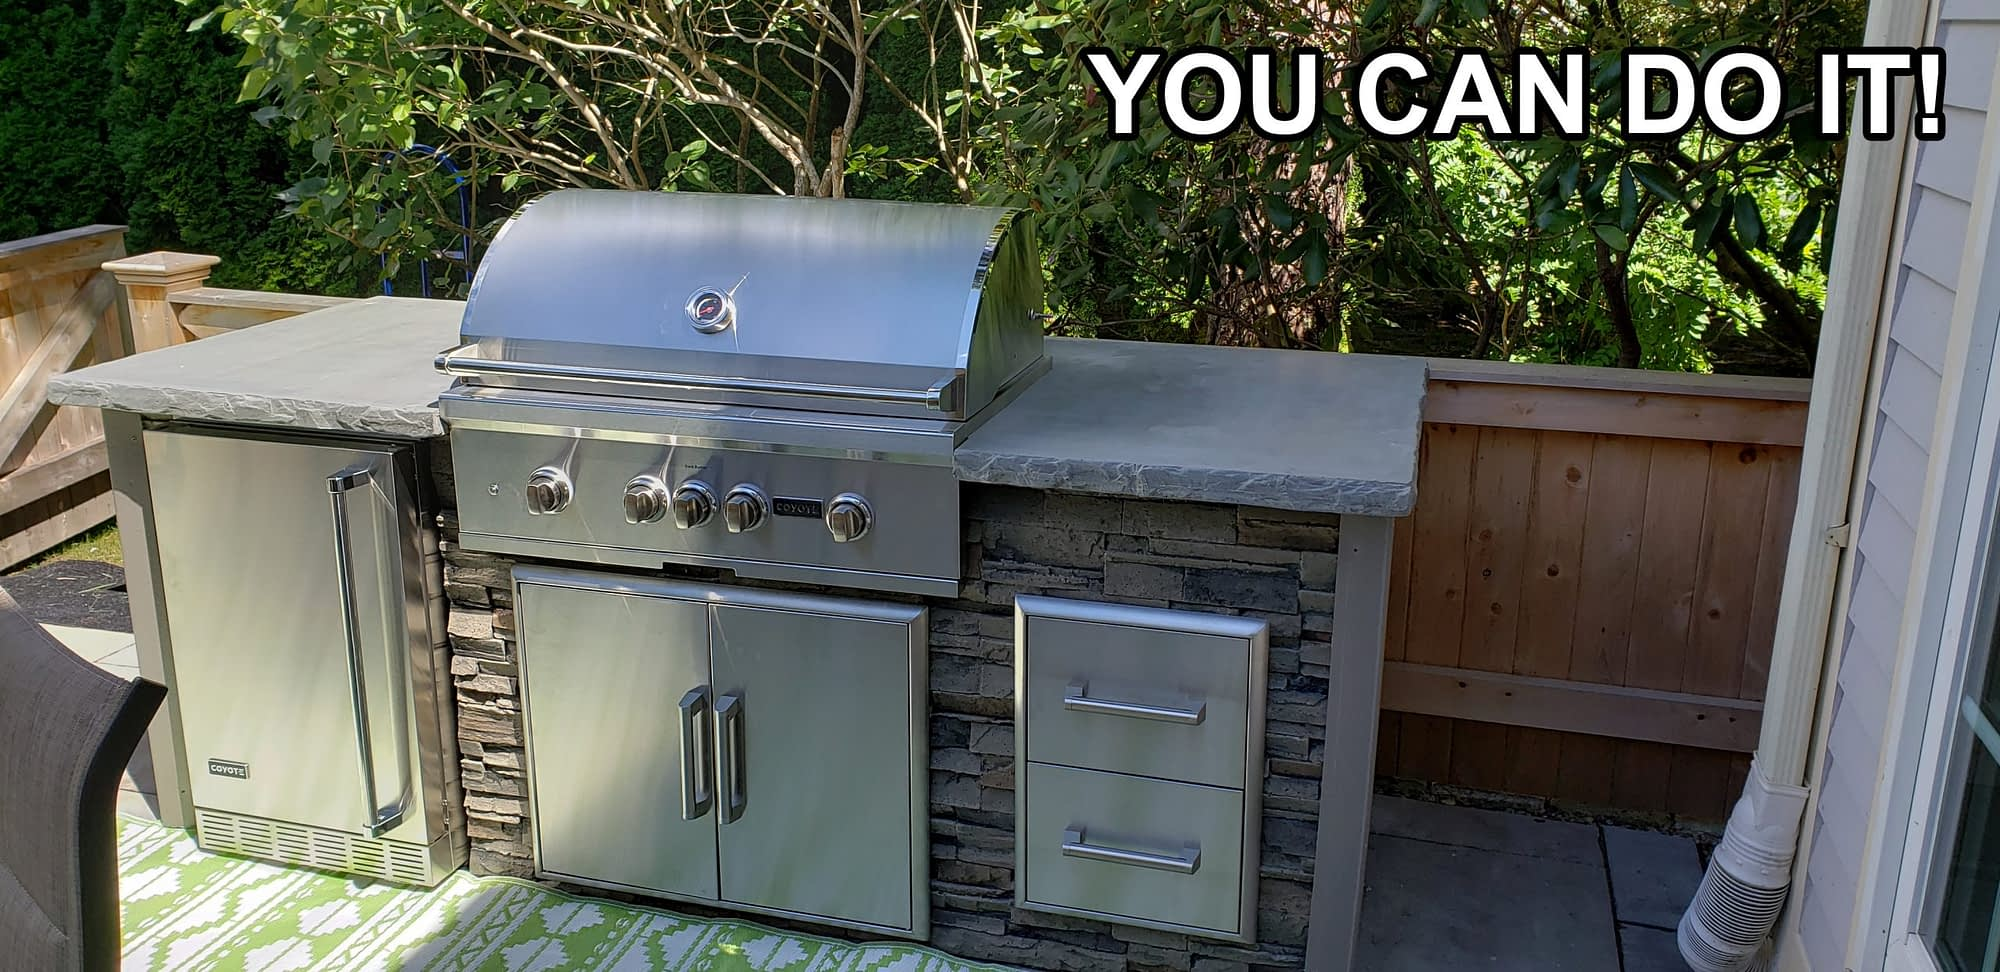 Outdoor kitchen on deck ready to use